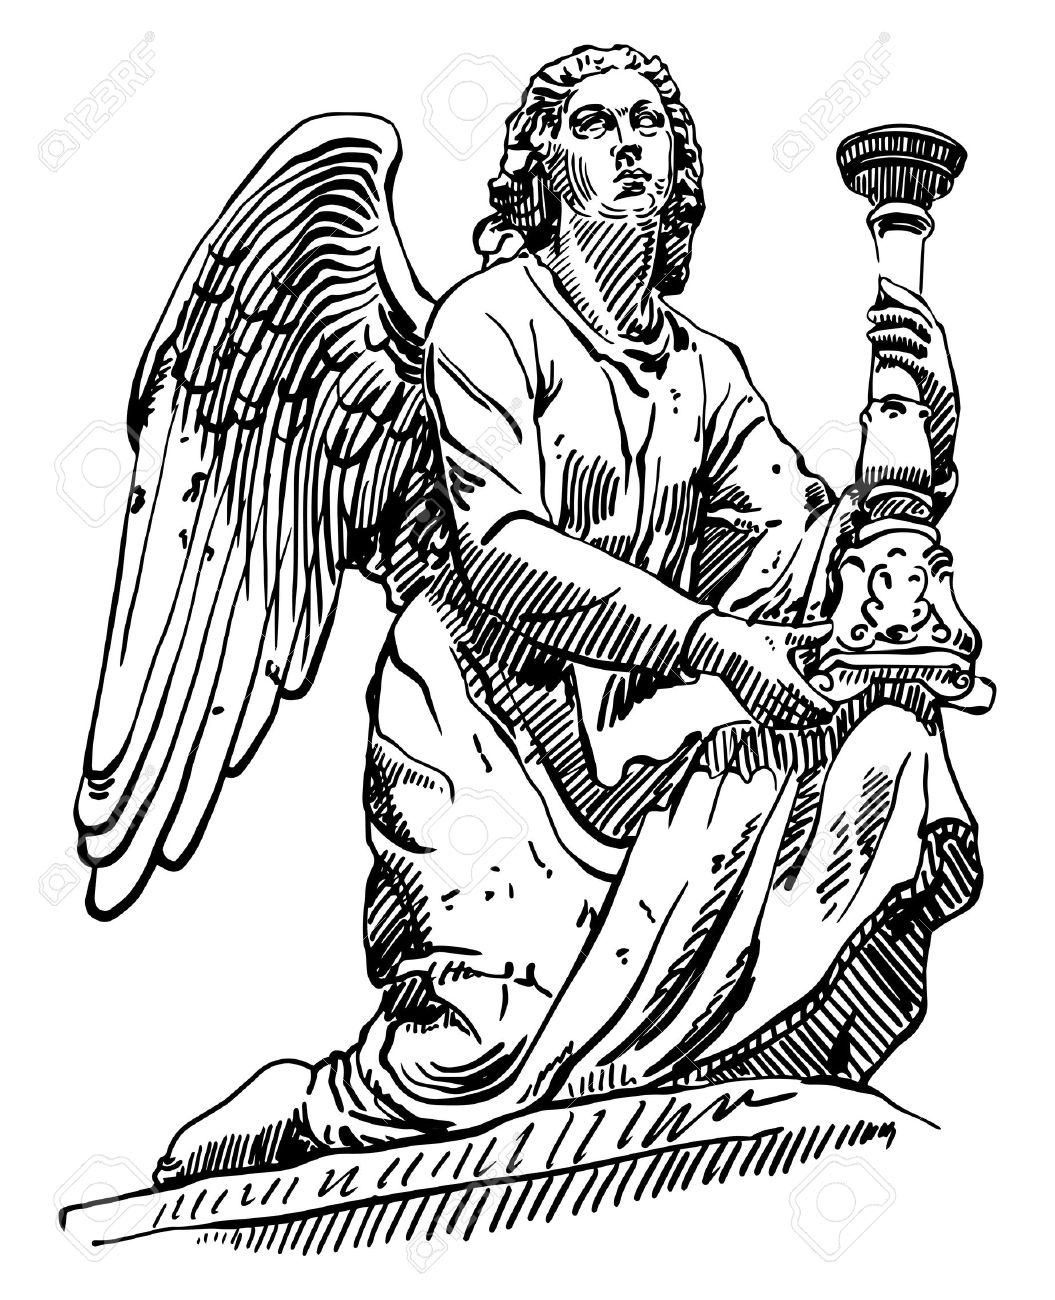 Black And White Sketch Drawing Of Marble Statue Angel From Rome.